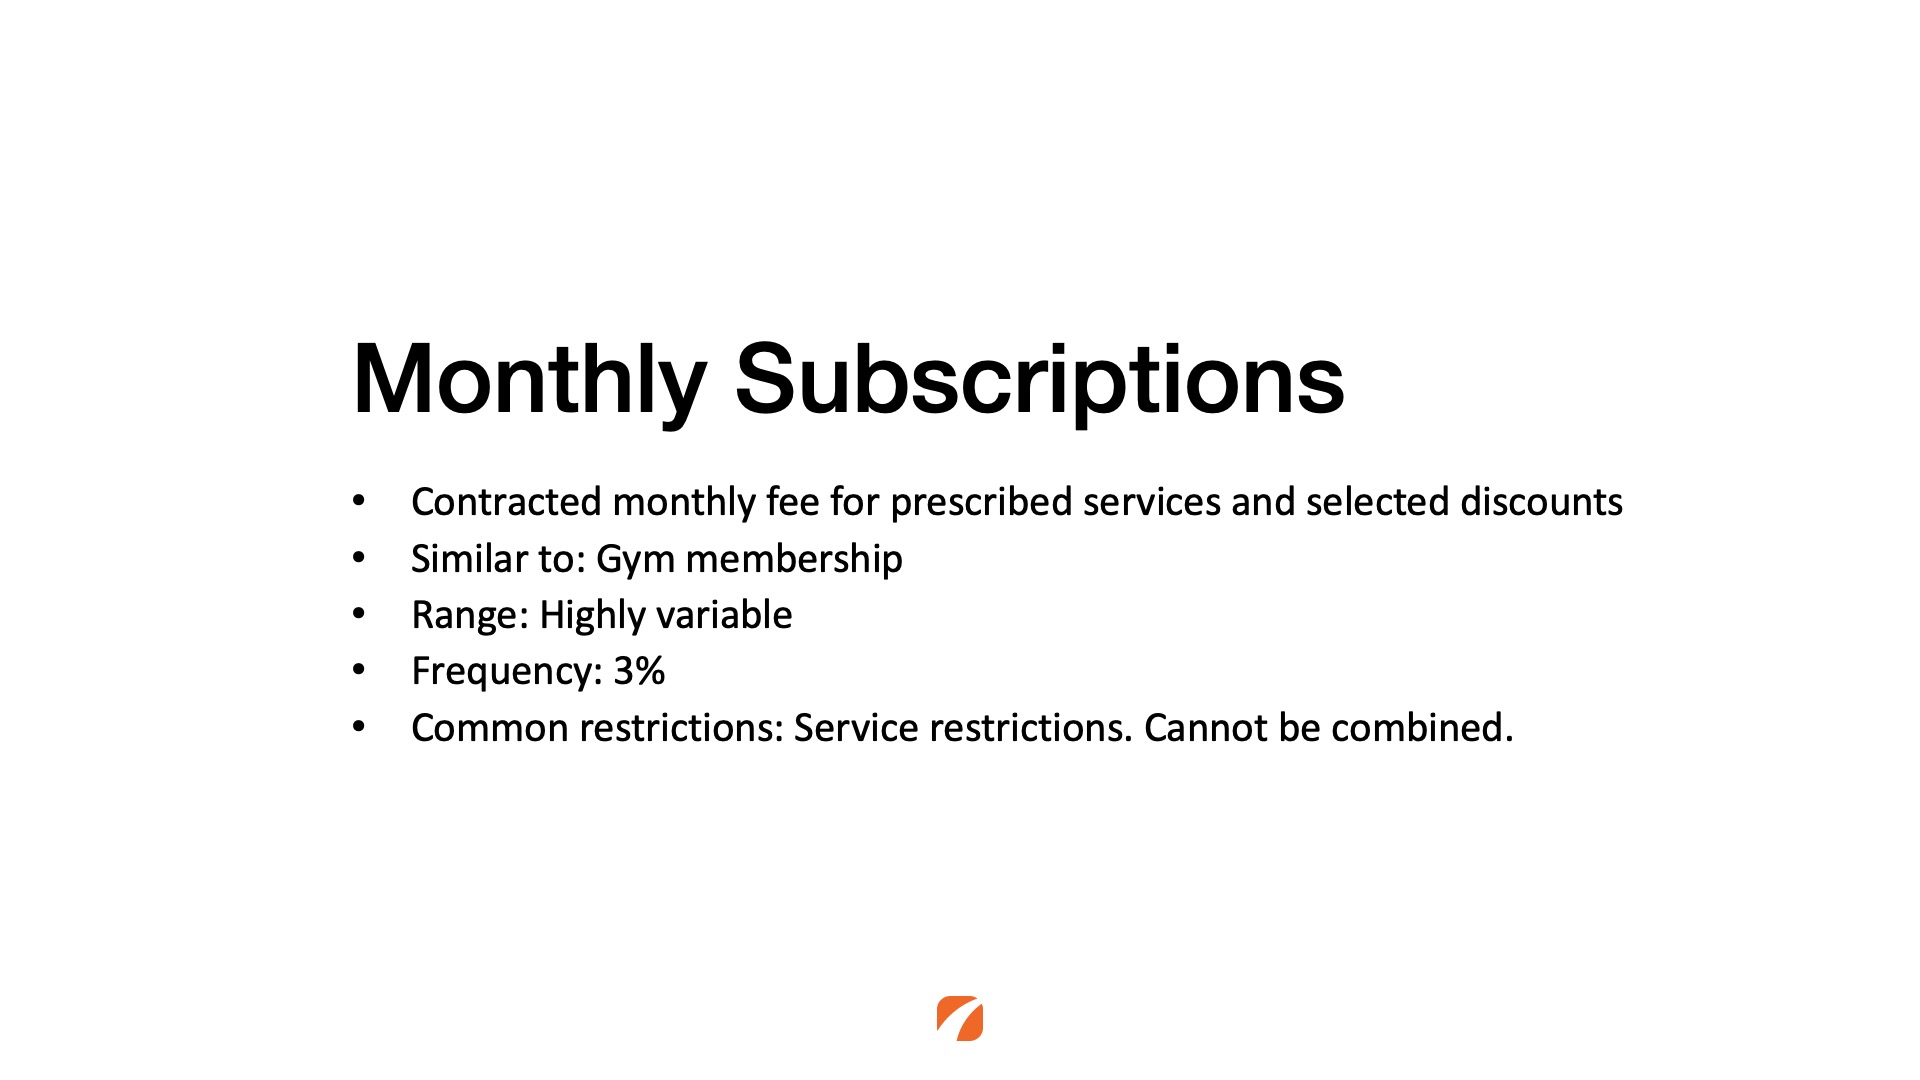 Monthly subscription rewards program within a medical practice.